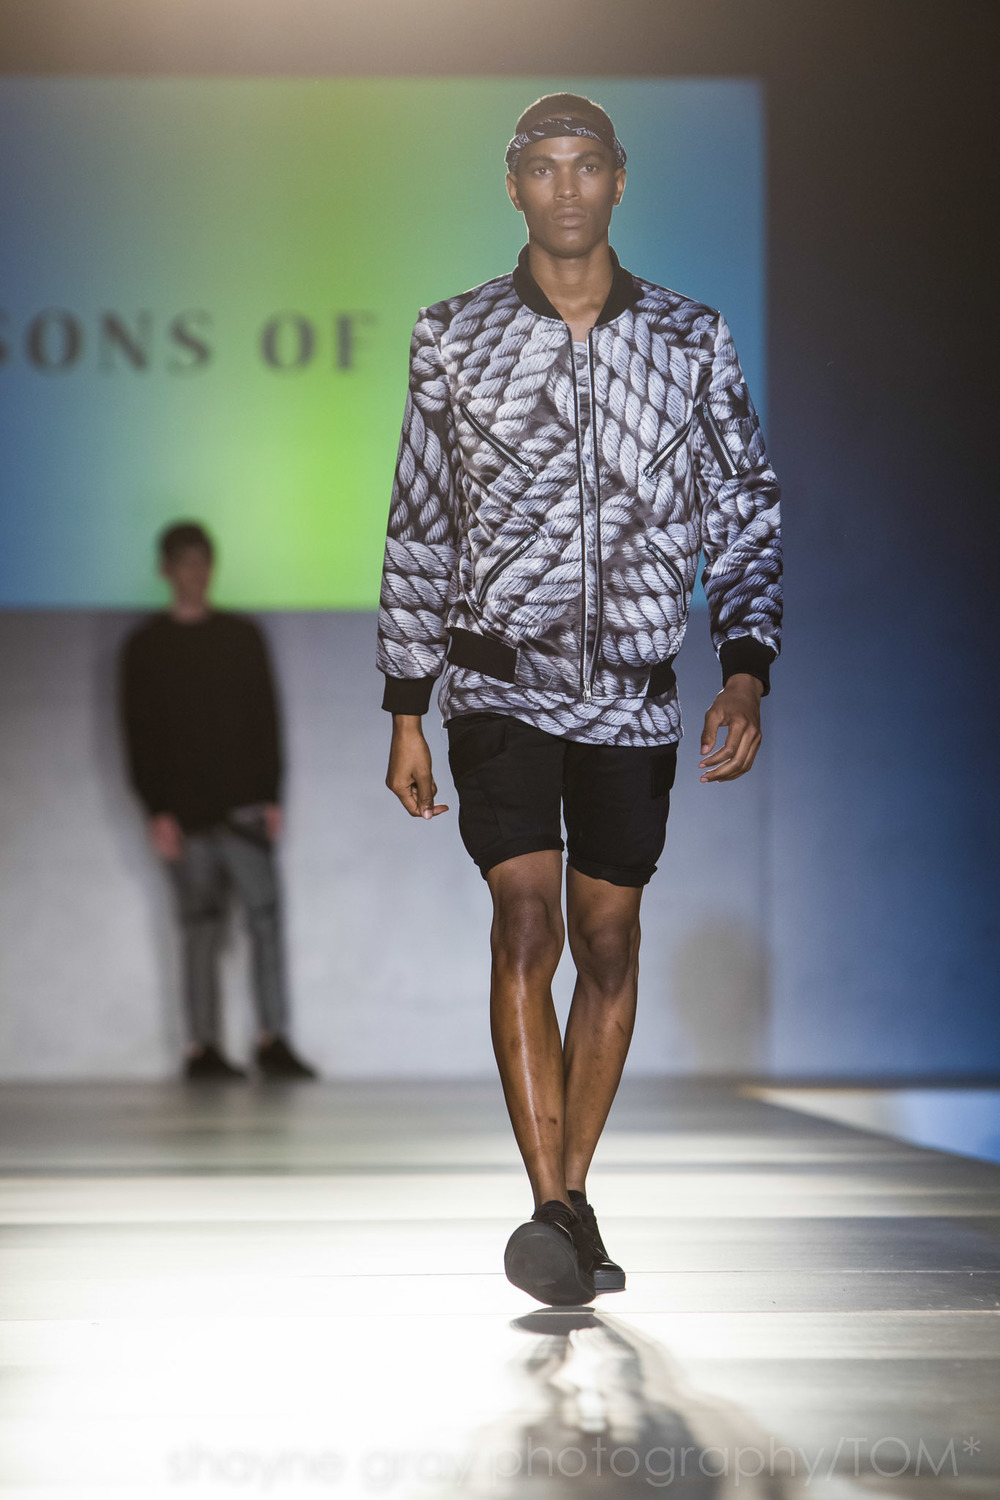 Shayne-Gray-Toronto-men's-fashion_week-TOM-sons-of-odin-8535.jpg